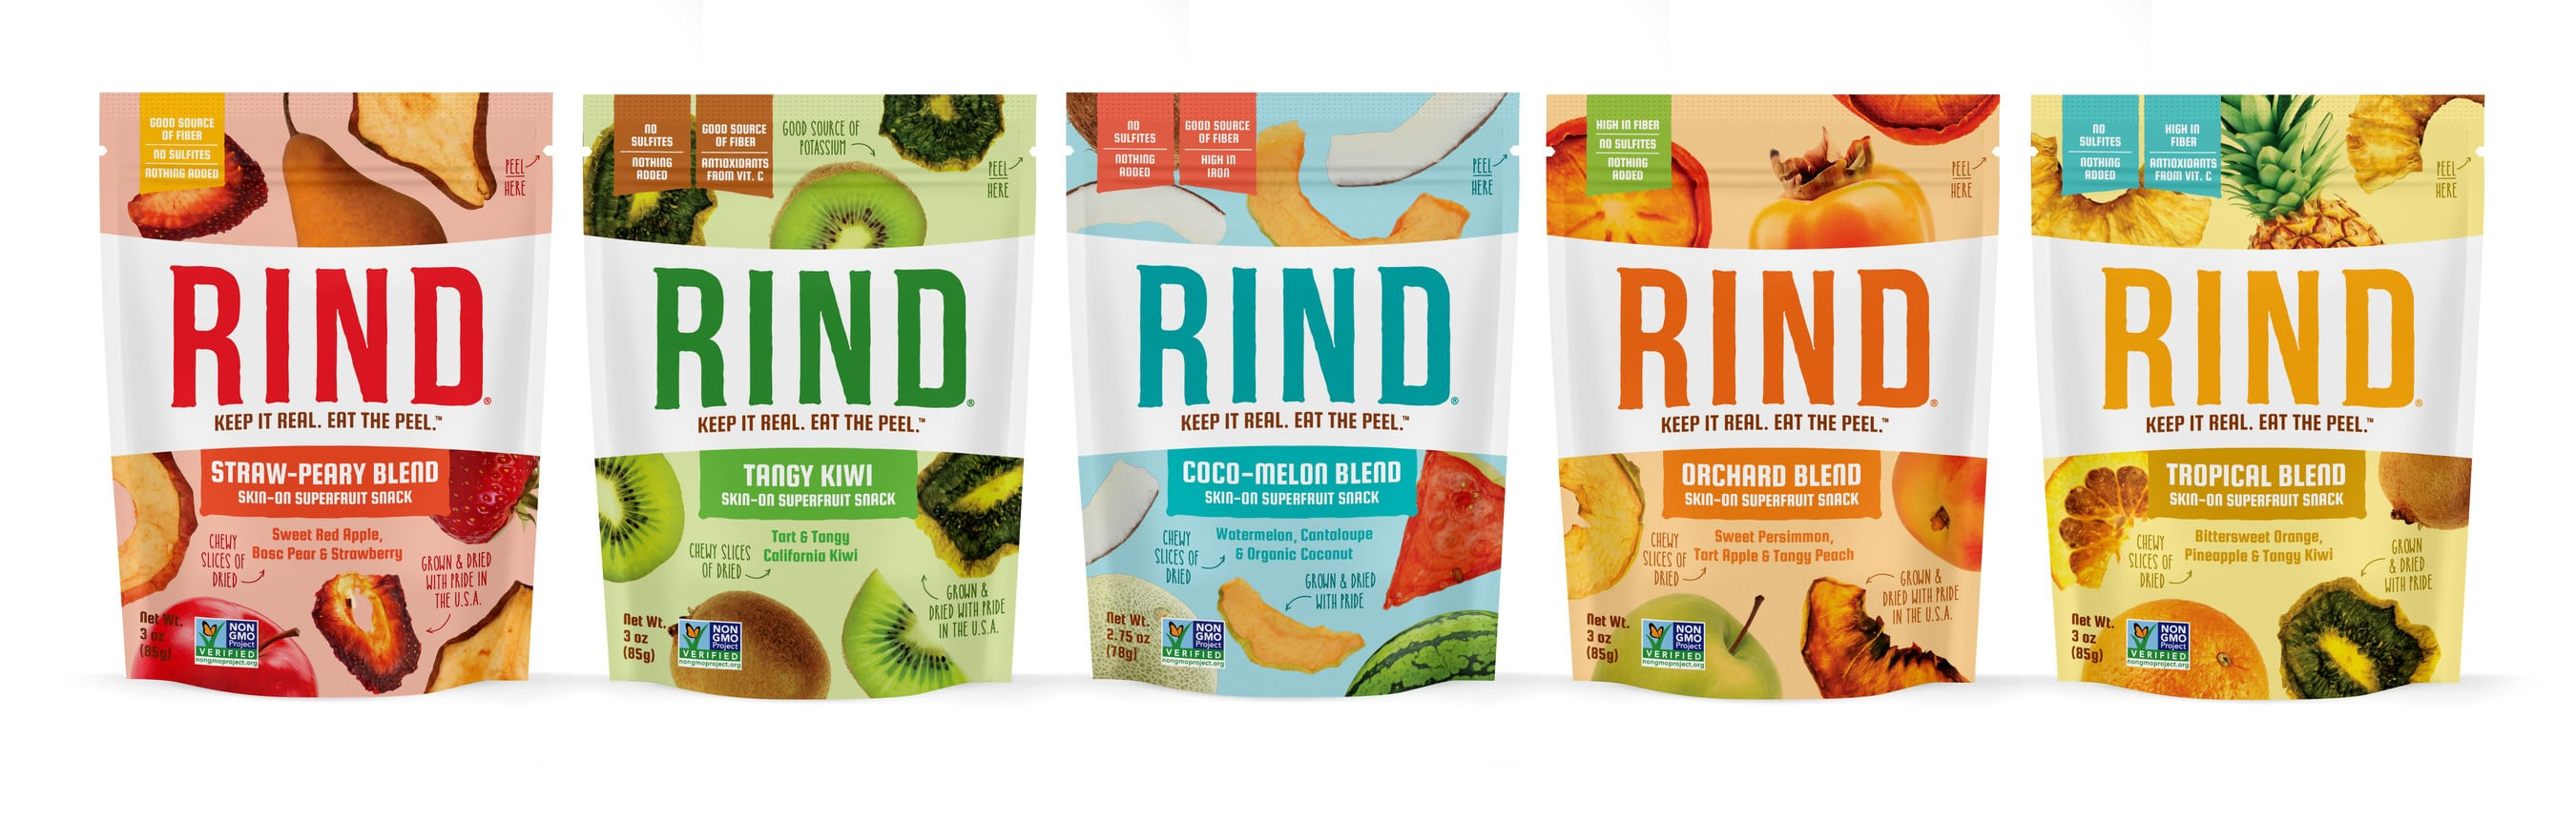 RIND Launches New Coco-Melon Flavor, Expands Distribution